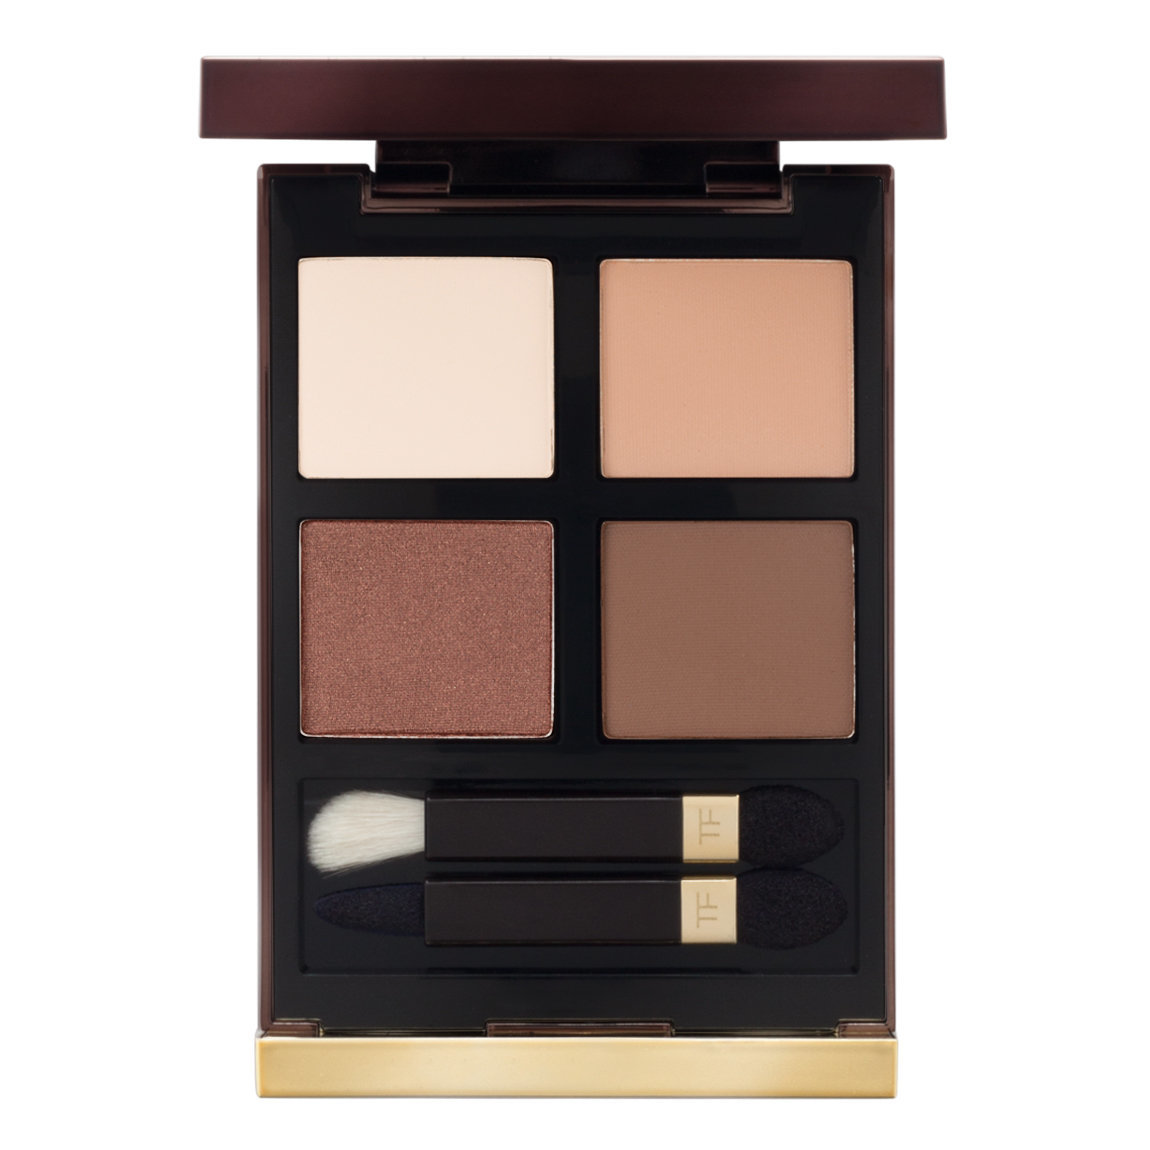 TOM FORD Eye Quad Cocoa Mirage product smear.